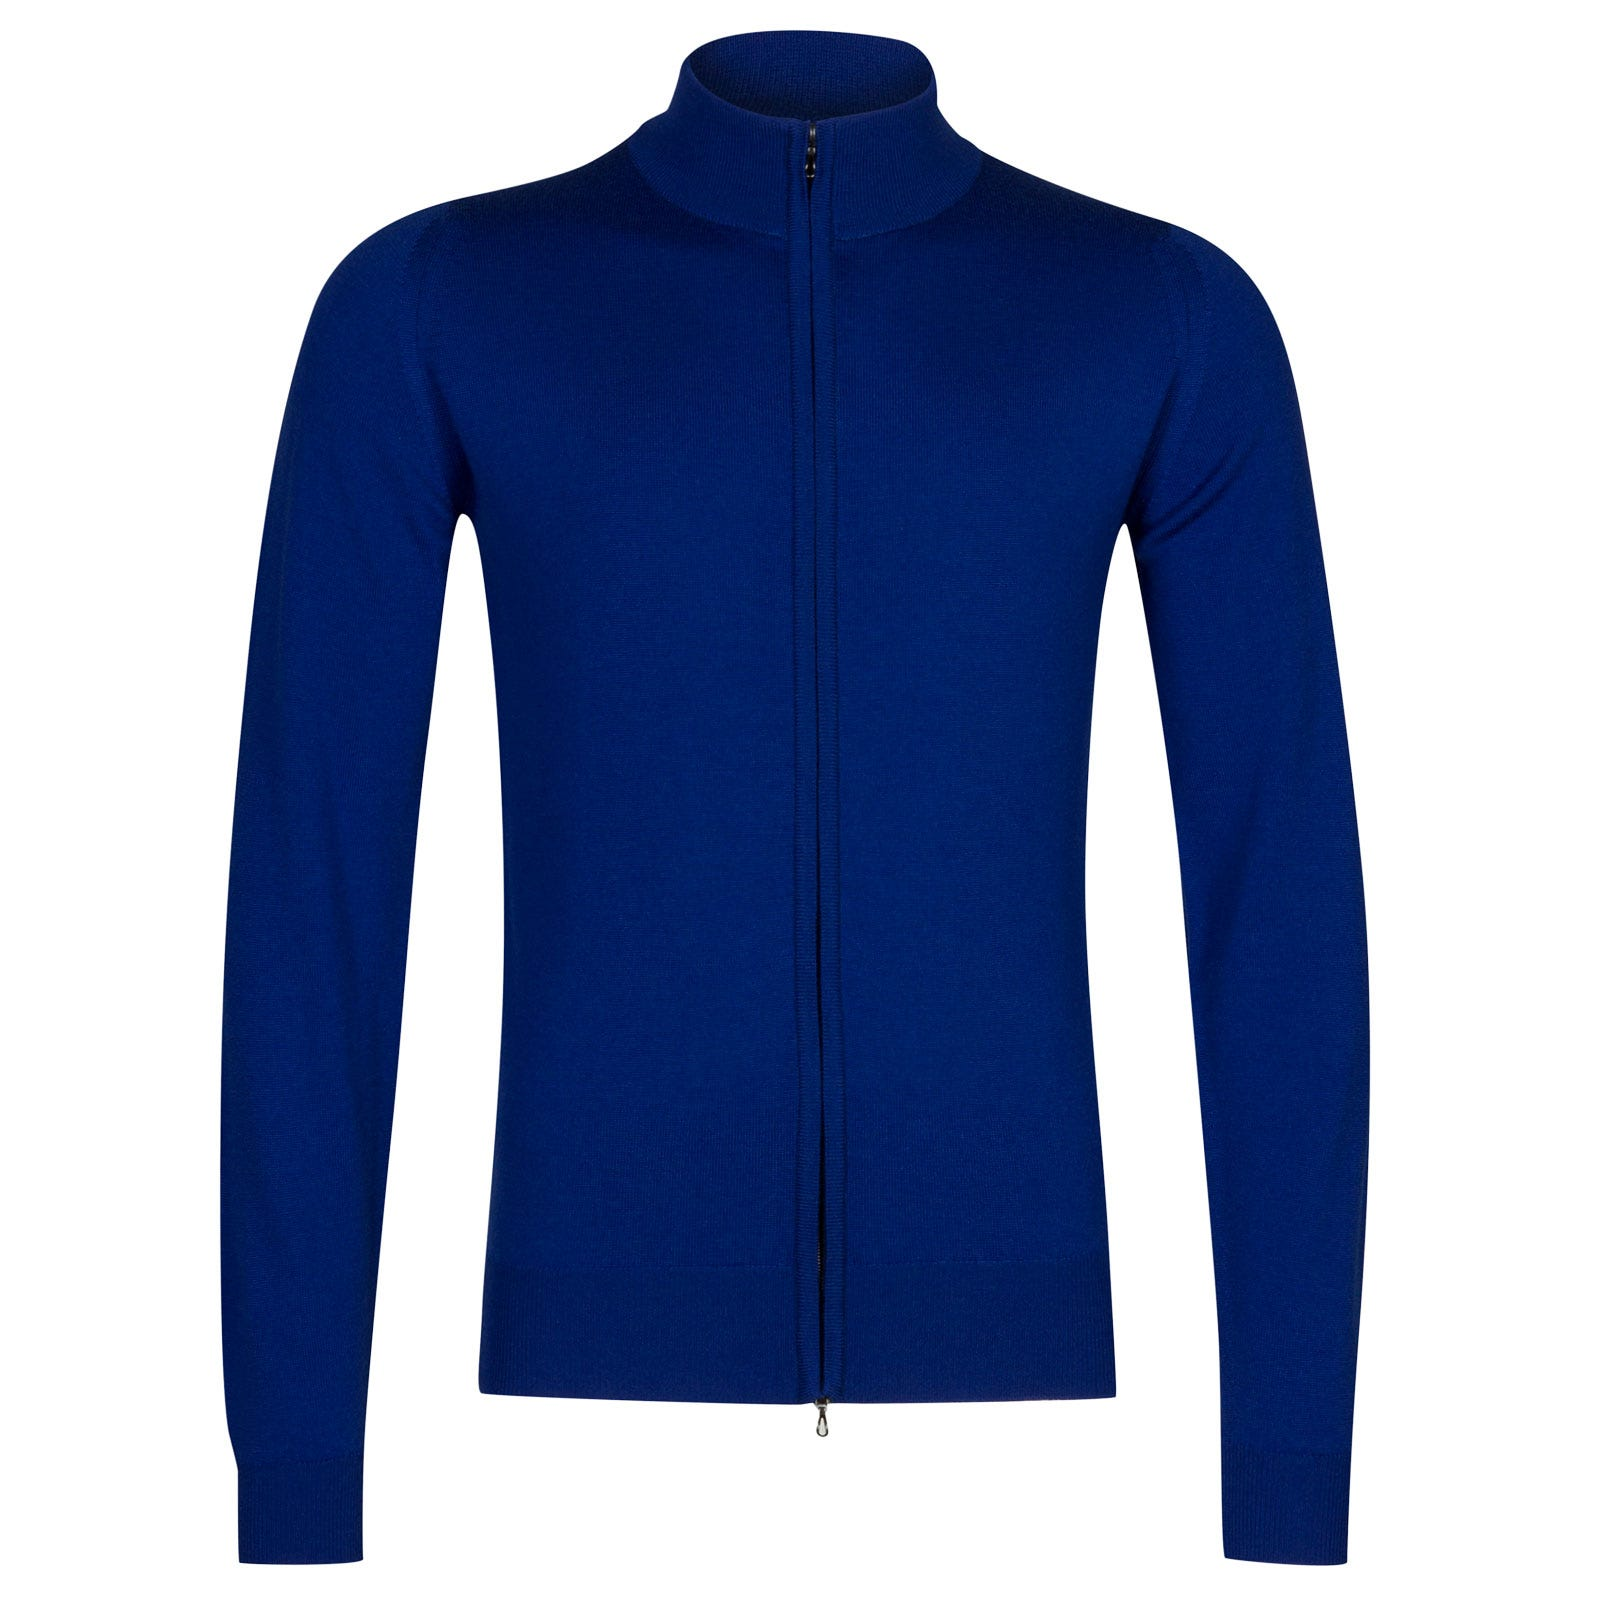 John Smedley claygate Merino Wool Jacket in Coniston Blue-S